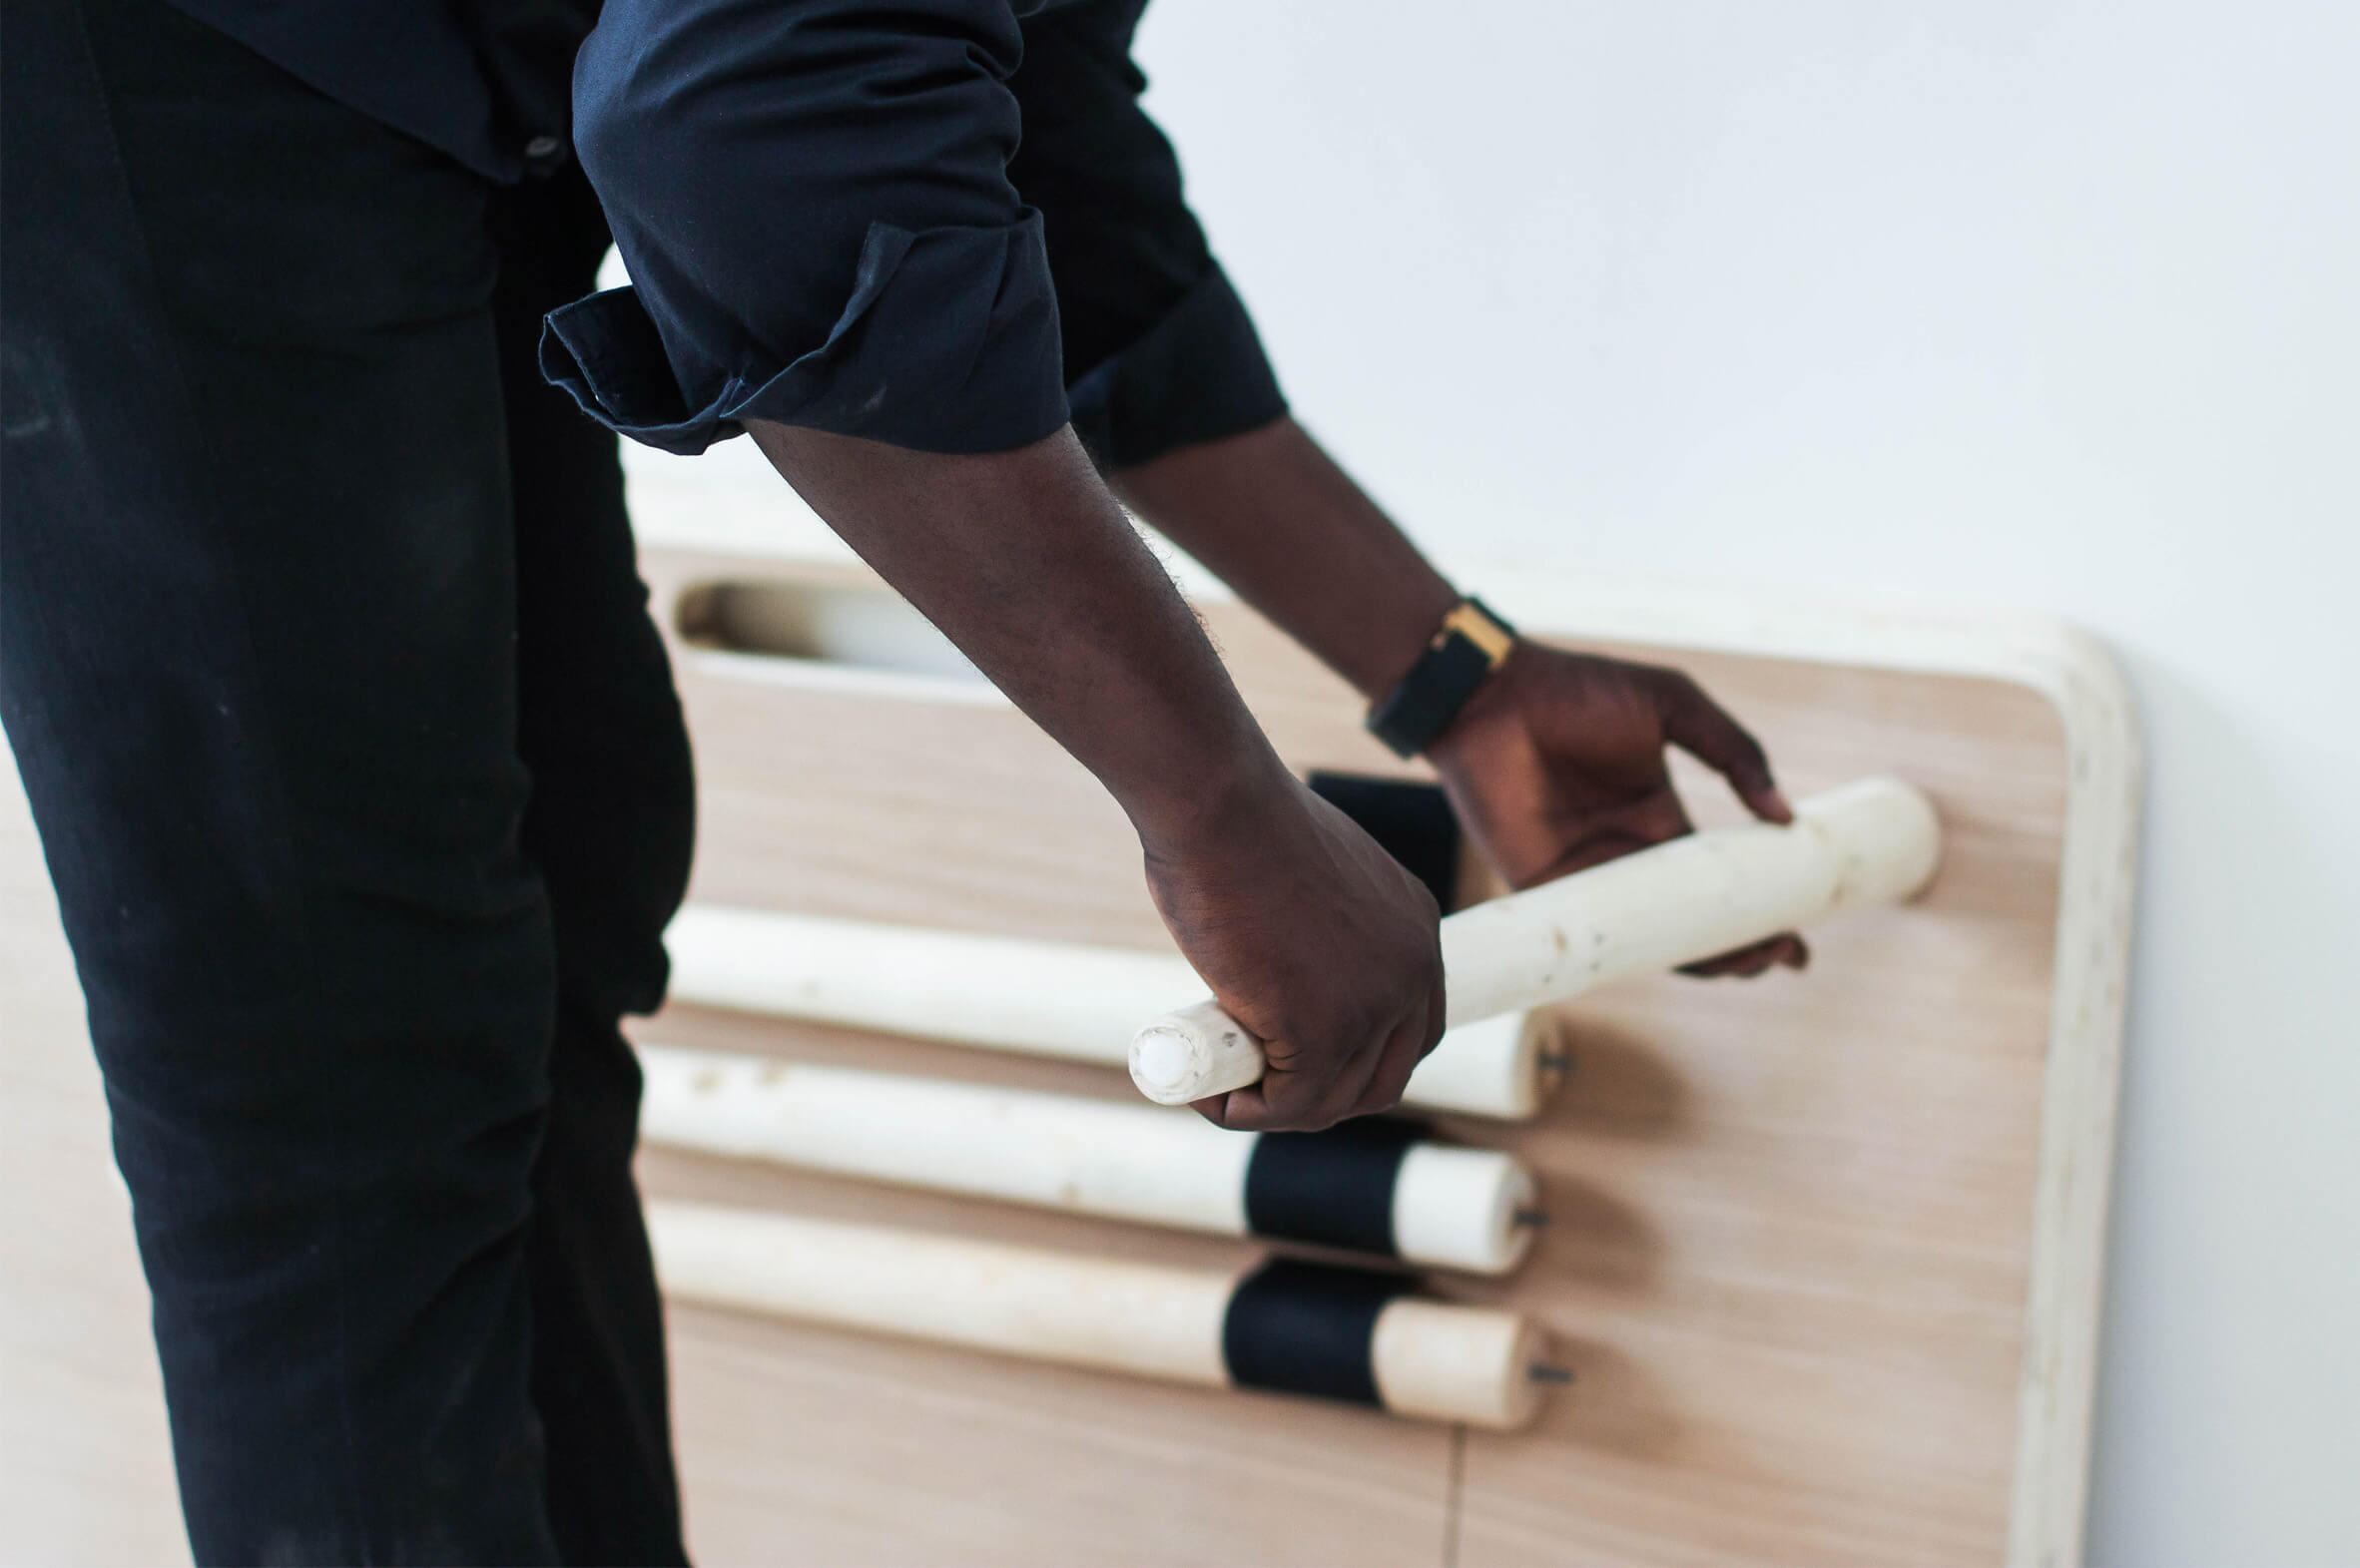 tebur-nifemi-marcu-bello-design-flat-pack-furniture_dezeen_2364_col_3